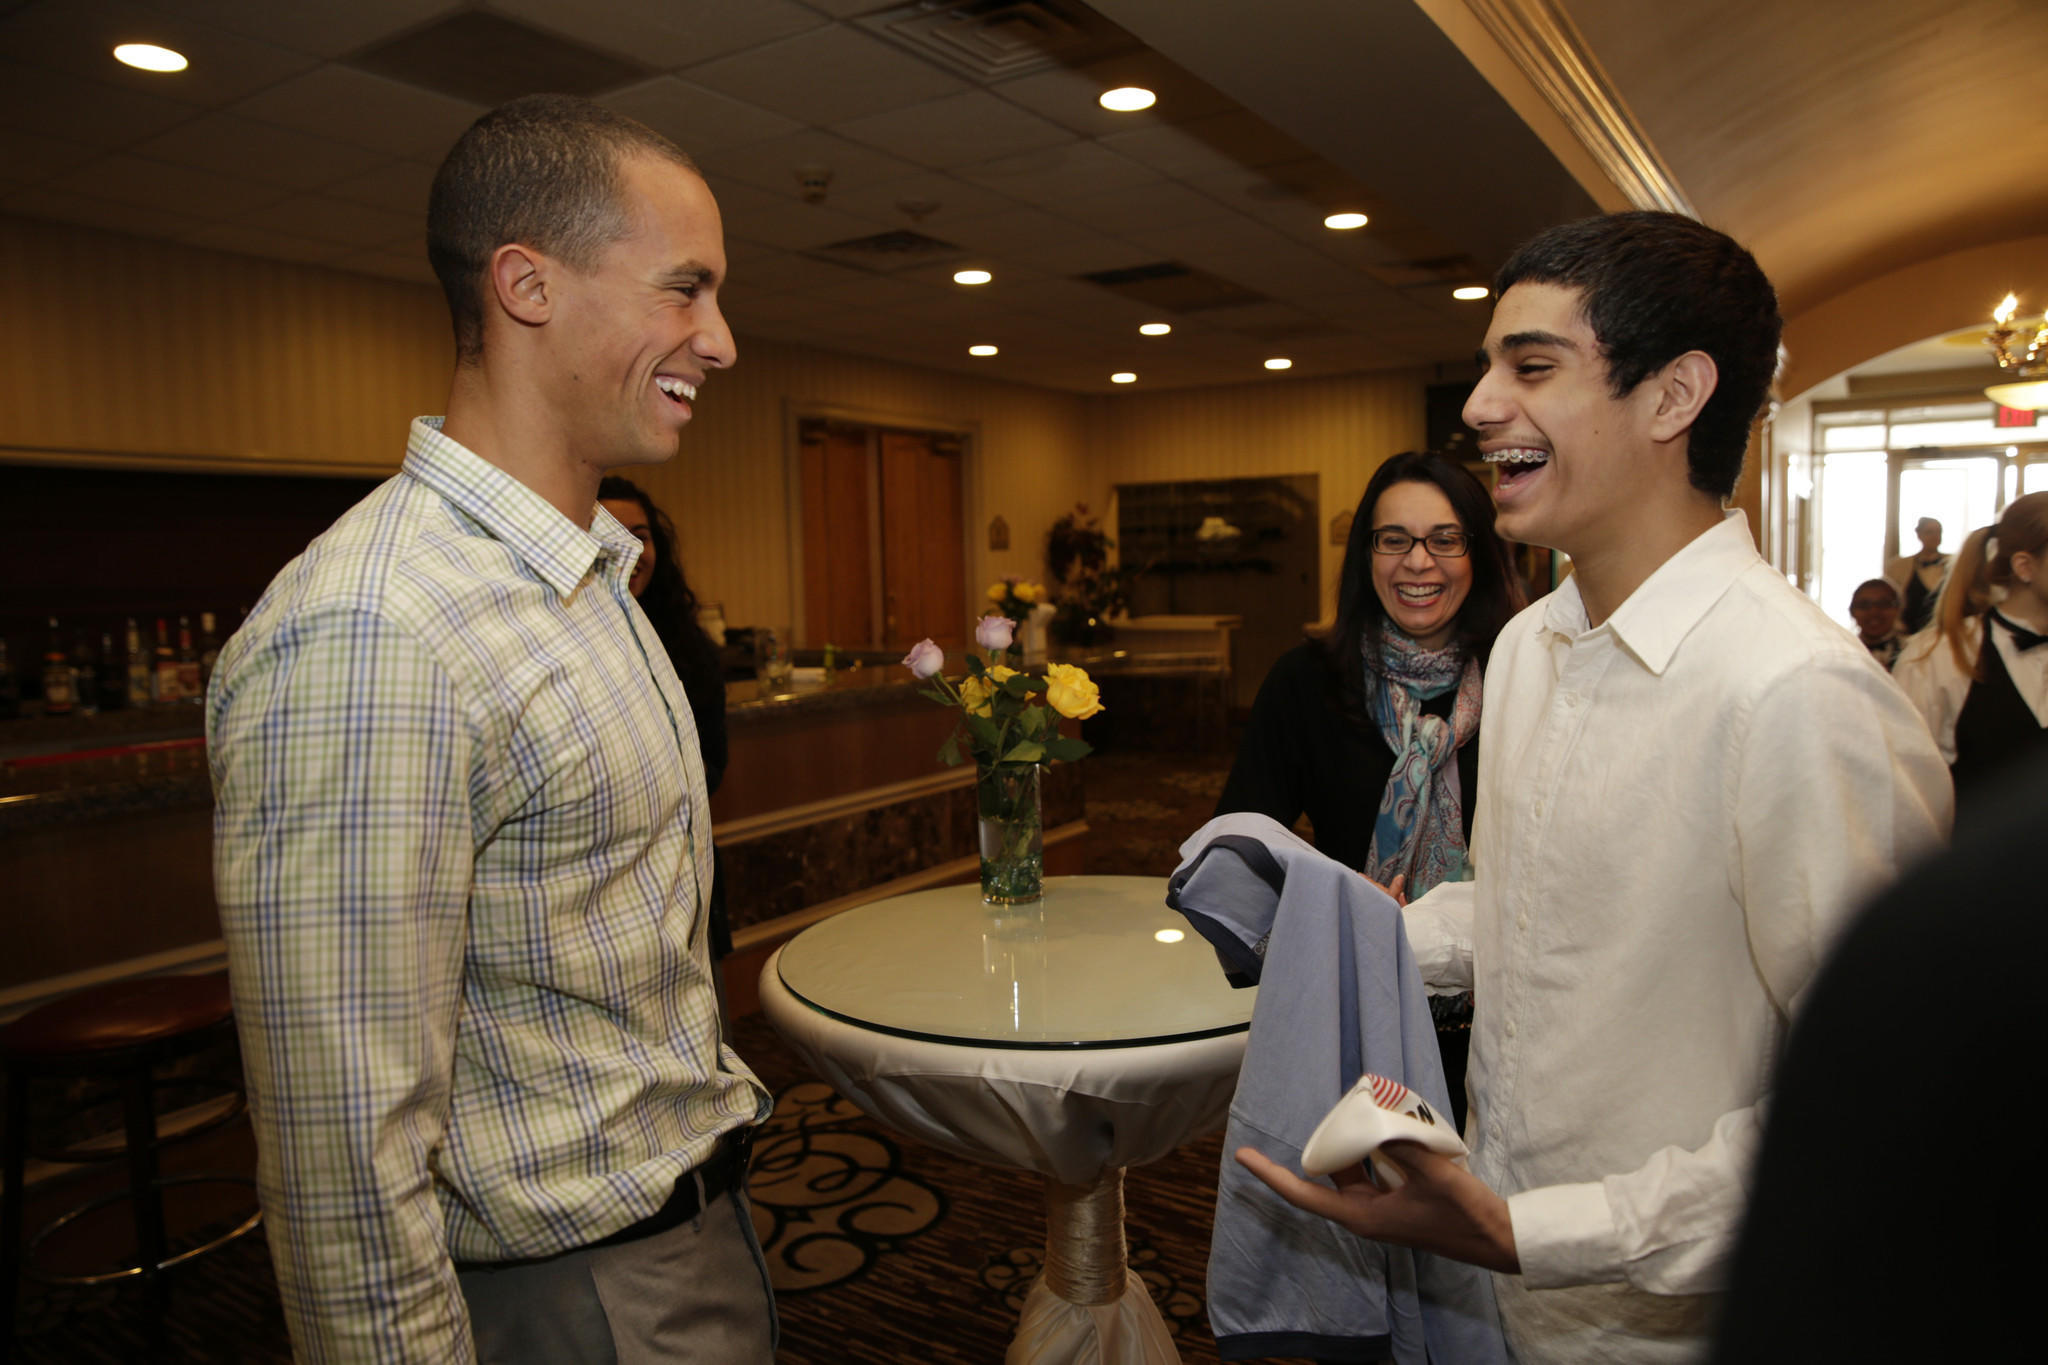 Omid Babakhani, 14, right, of Crystal Lake, is all smiles after receiving an autographed swim cap and t-shirt from BJ Johnson, left,, a member of the US National Swim Team, before the start of a swim banquet on Sunday.